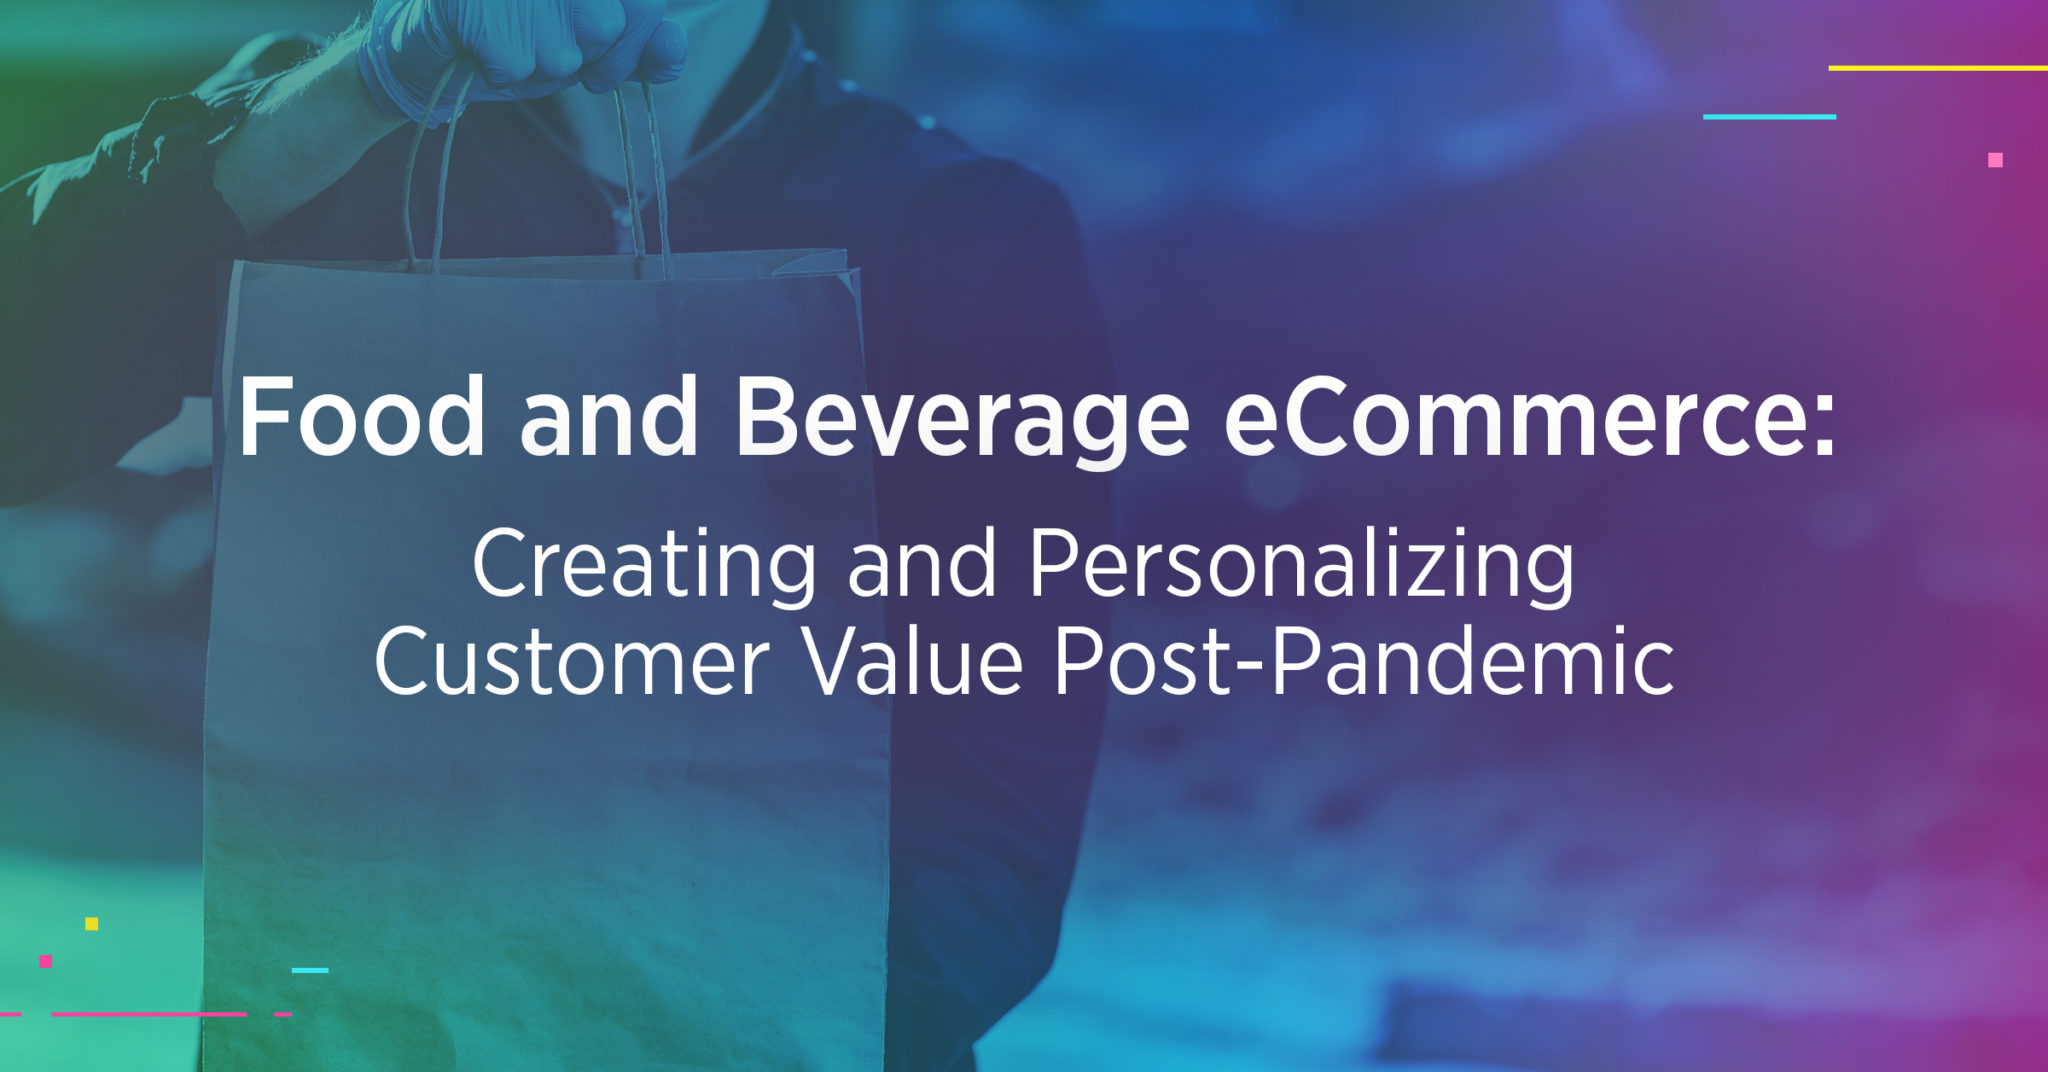 Food and Beverage eCommerce: Creating and Personalizing Customer Value Post-Pandemic